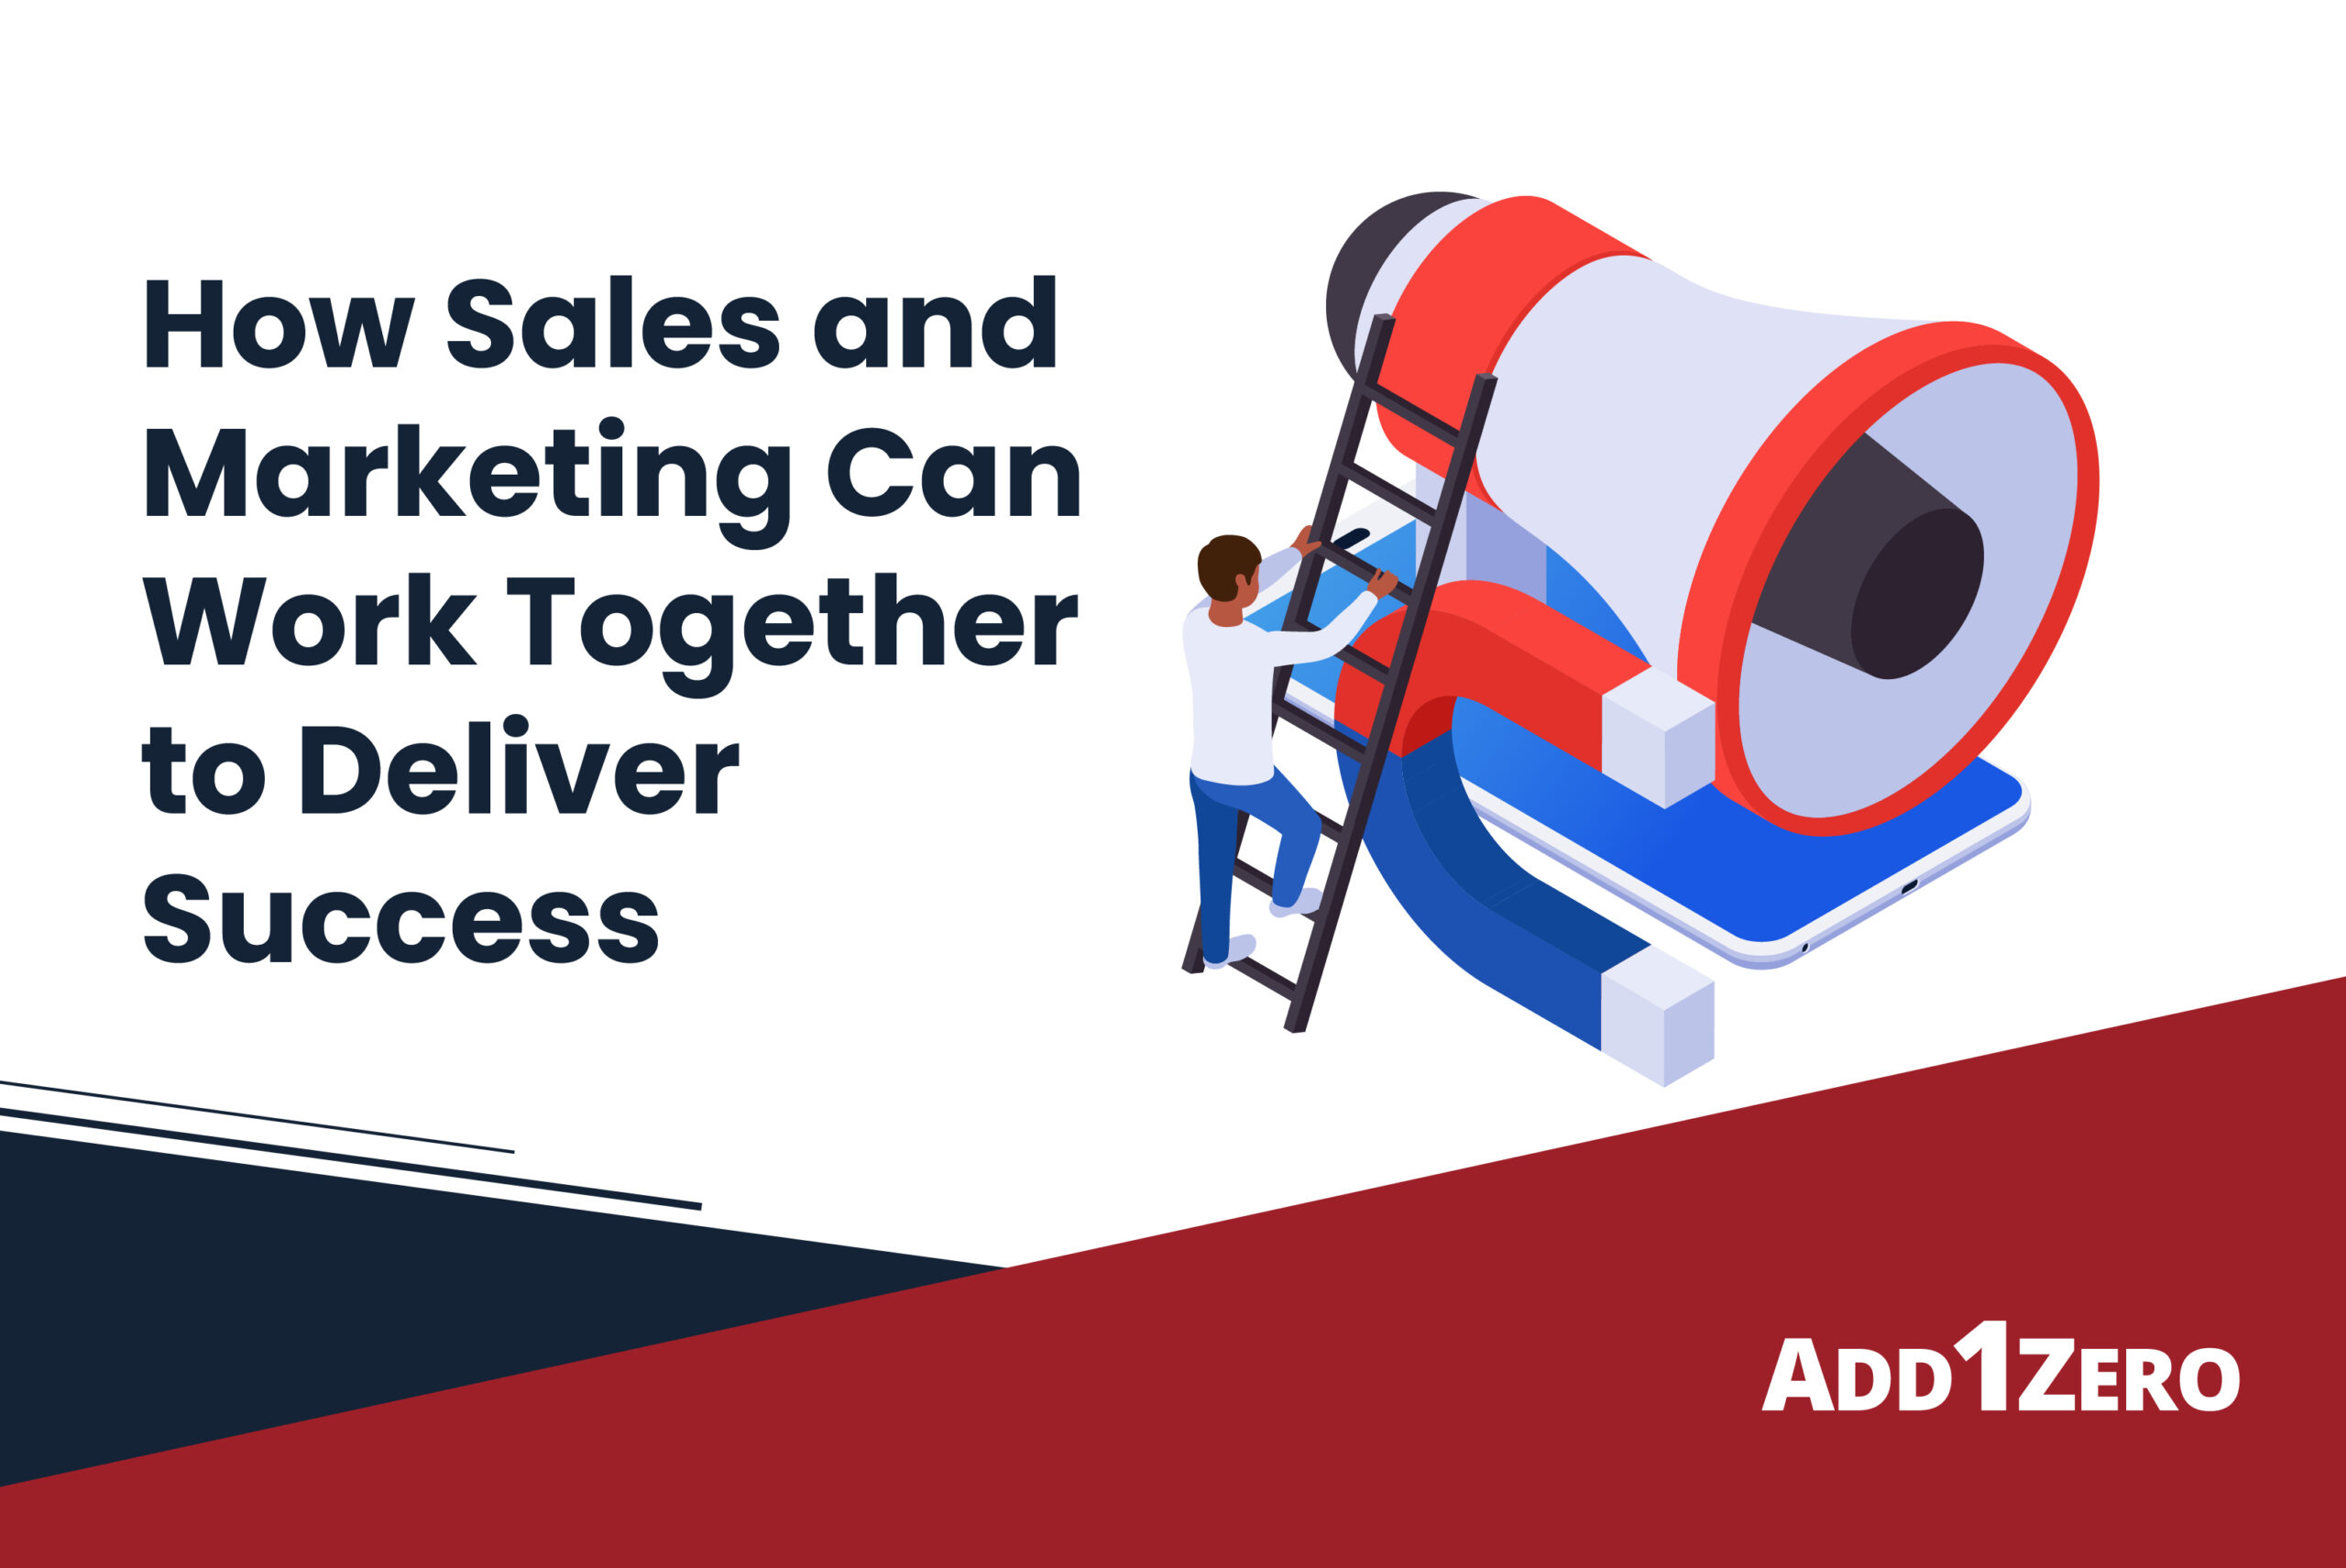 How Sales and Marketing Can Work Together to Deliver Success